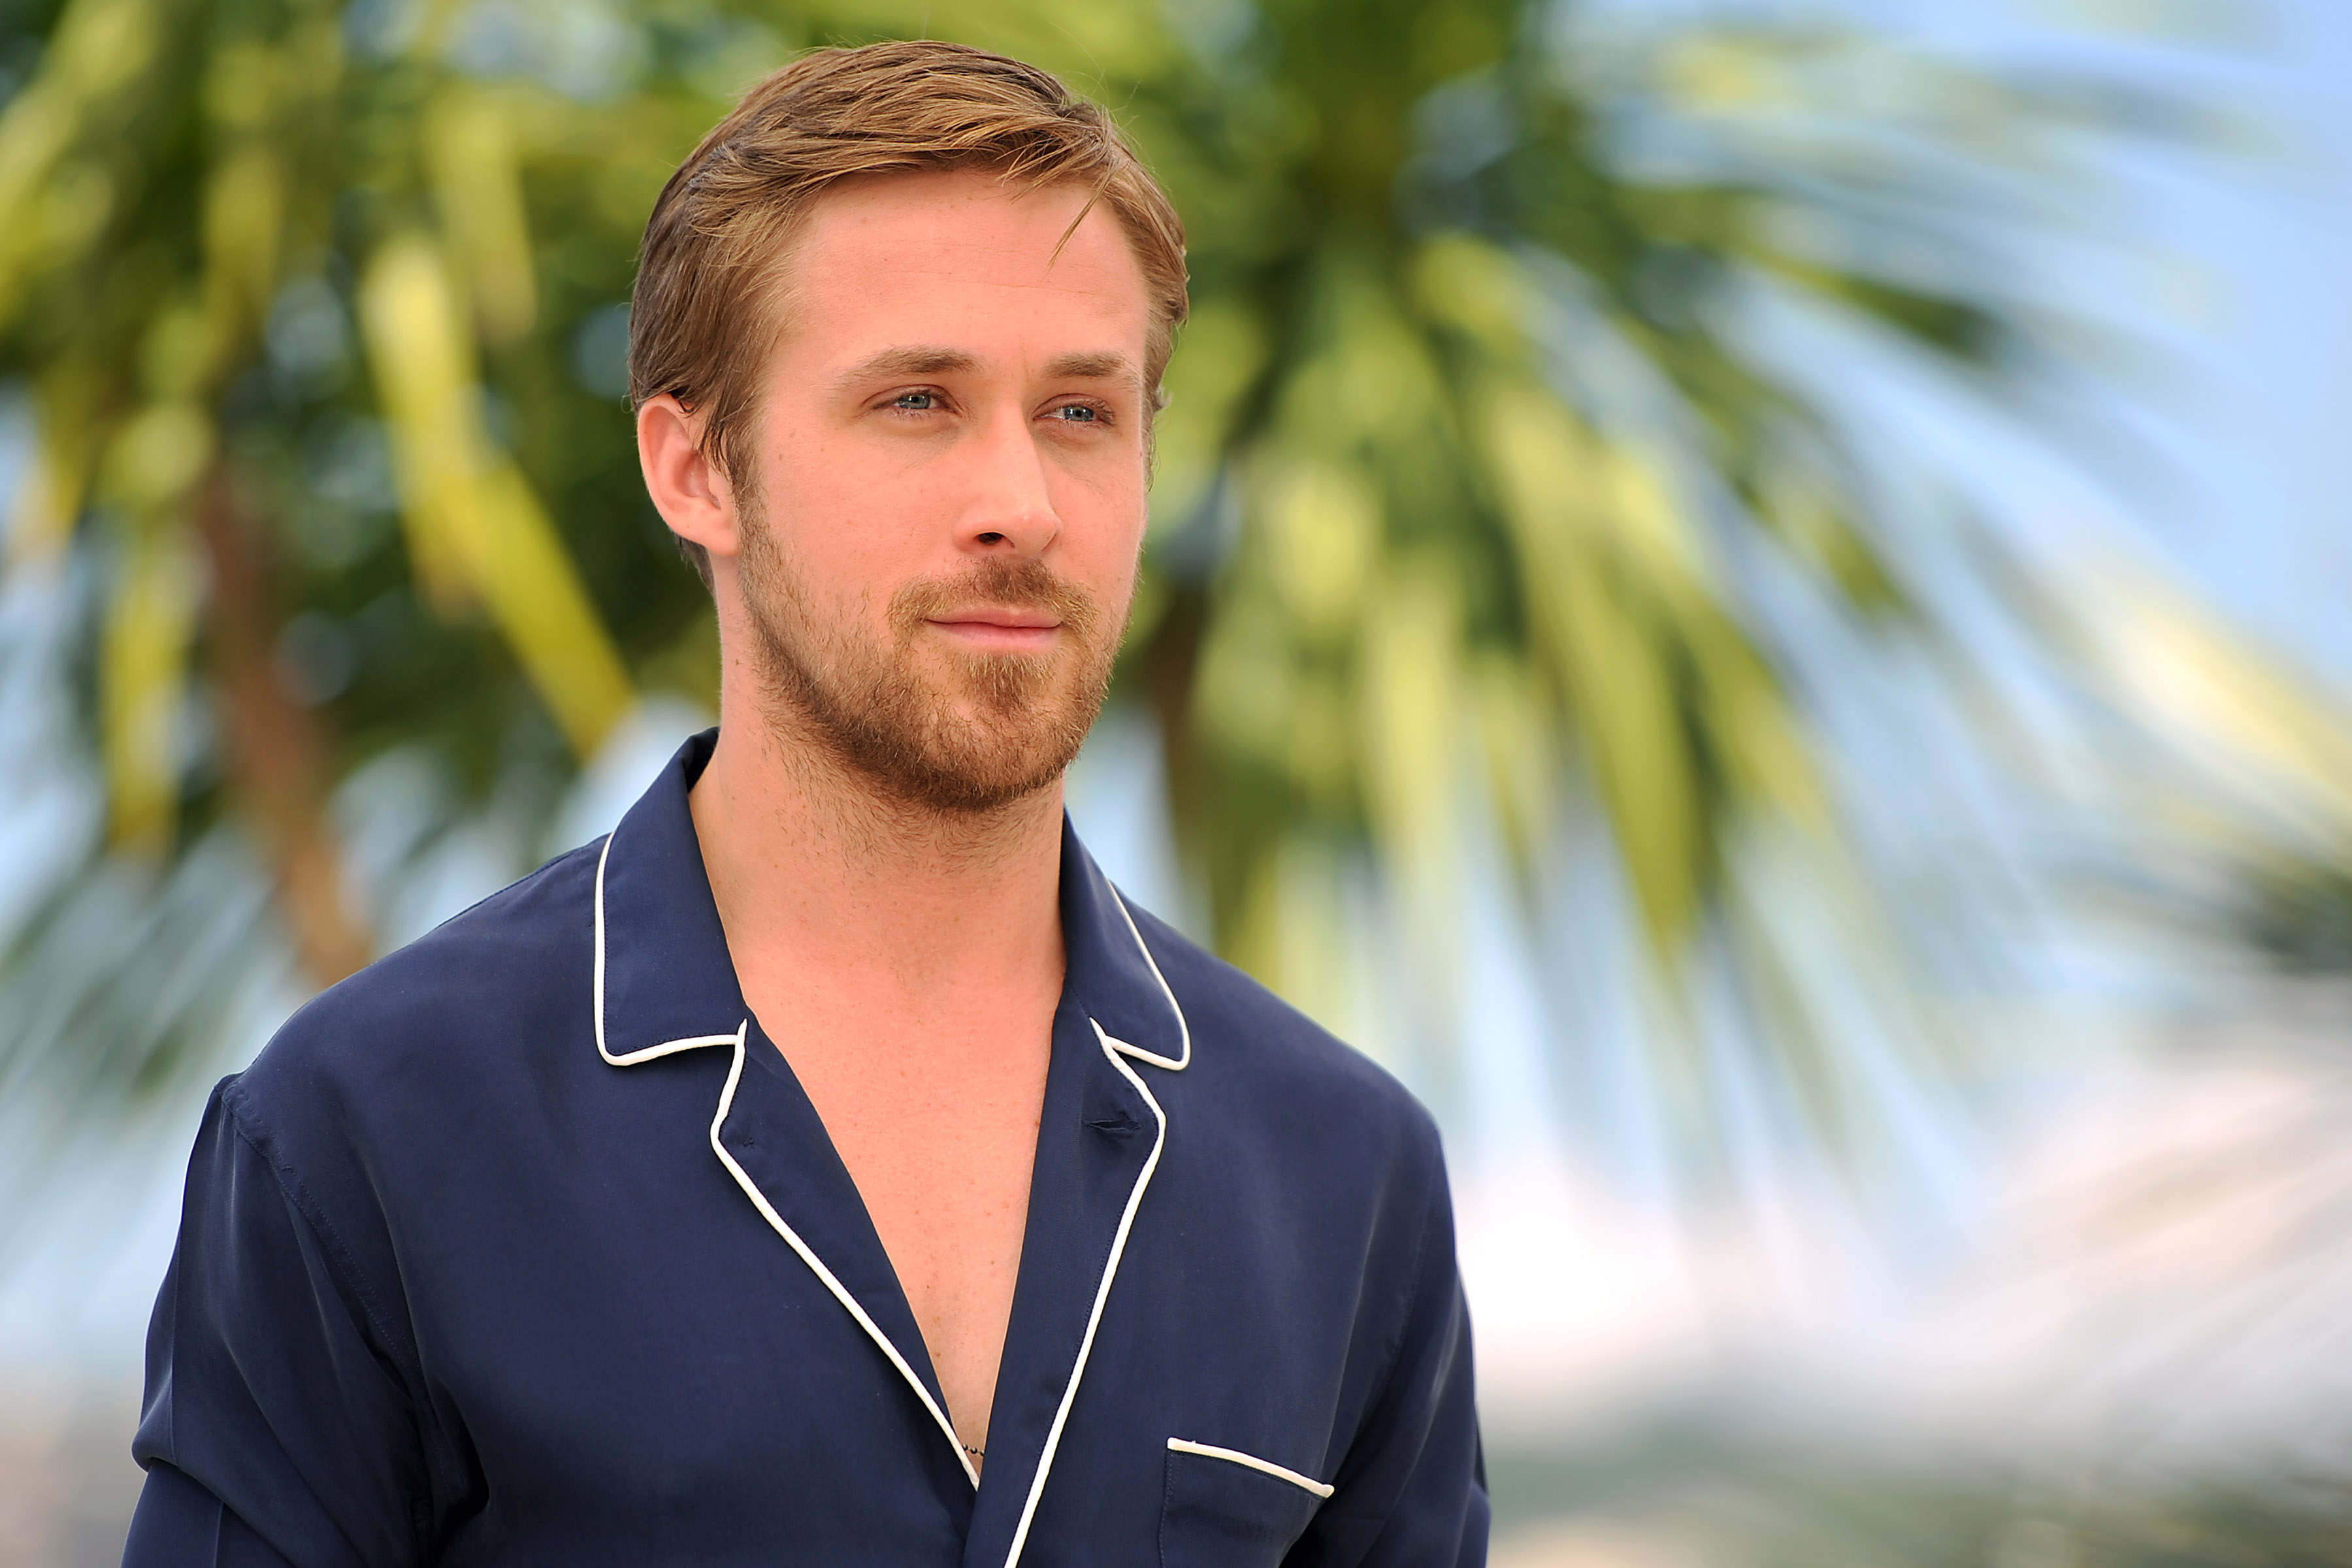 Ryan Gosling Wallpapers High Resolution And Quality Download